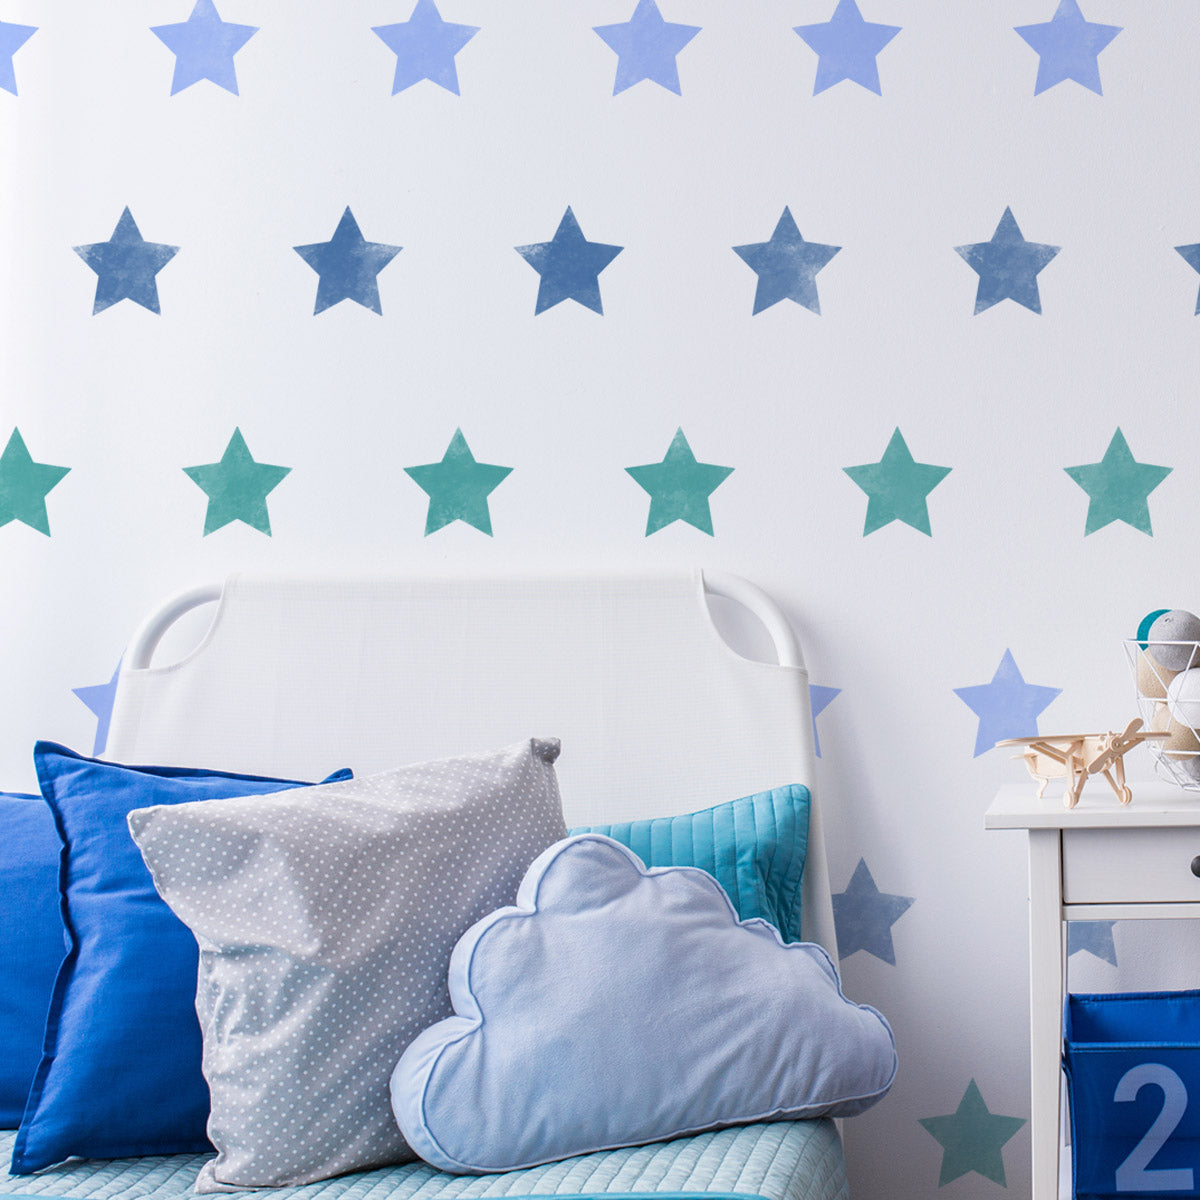 CraftStar Large Star Repeating Pattern Wall Stencil